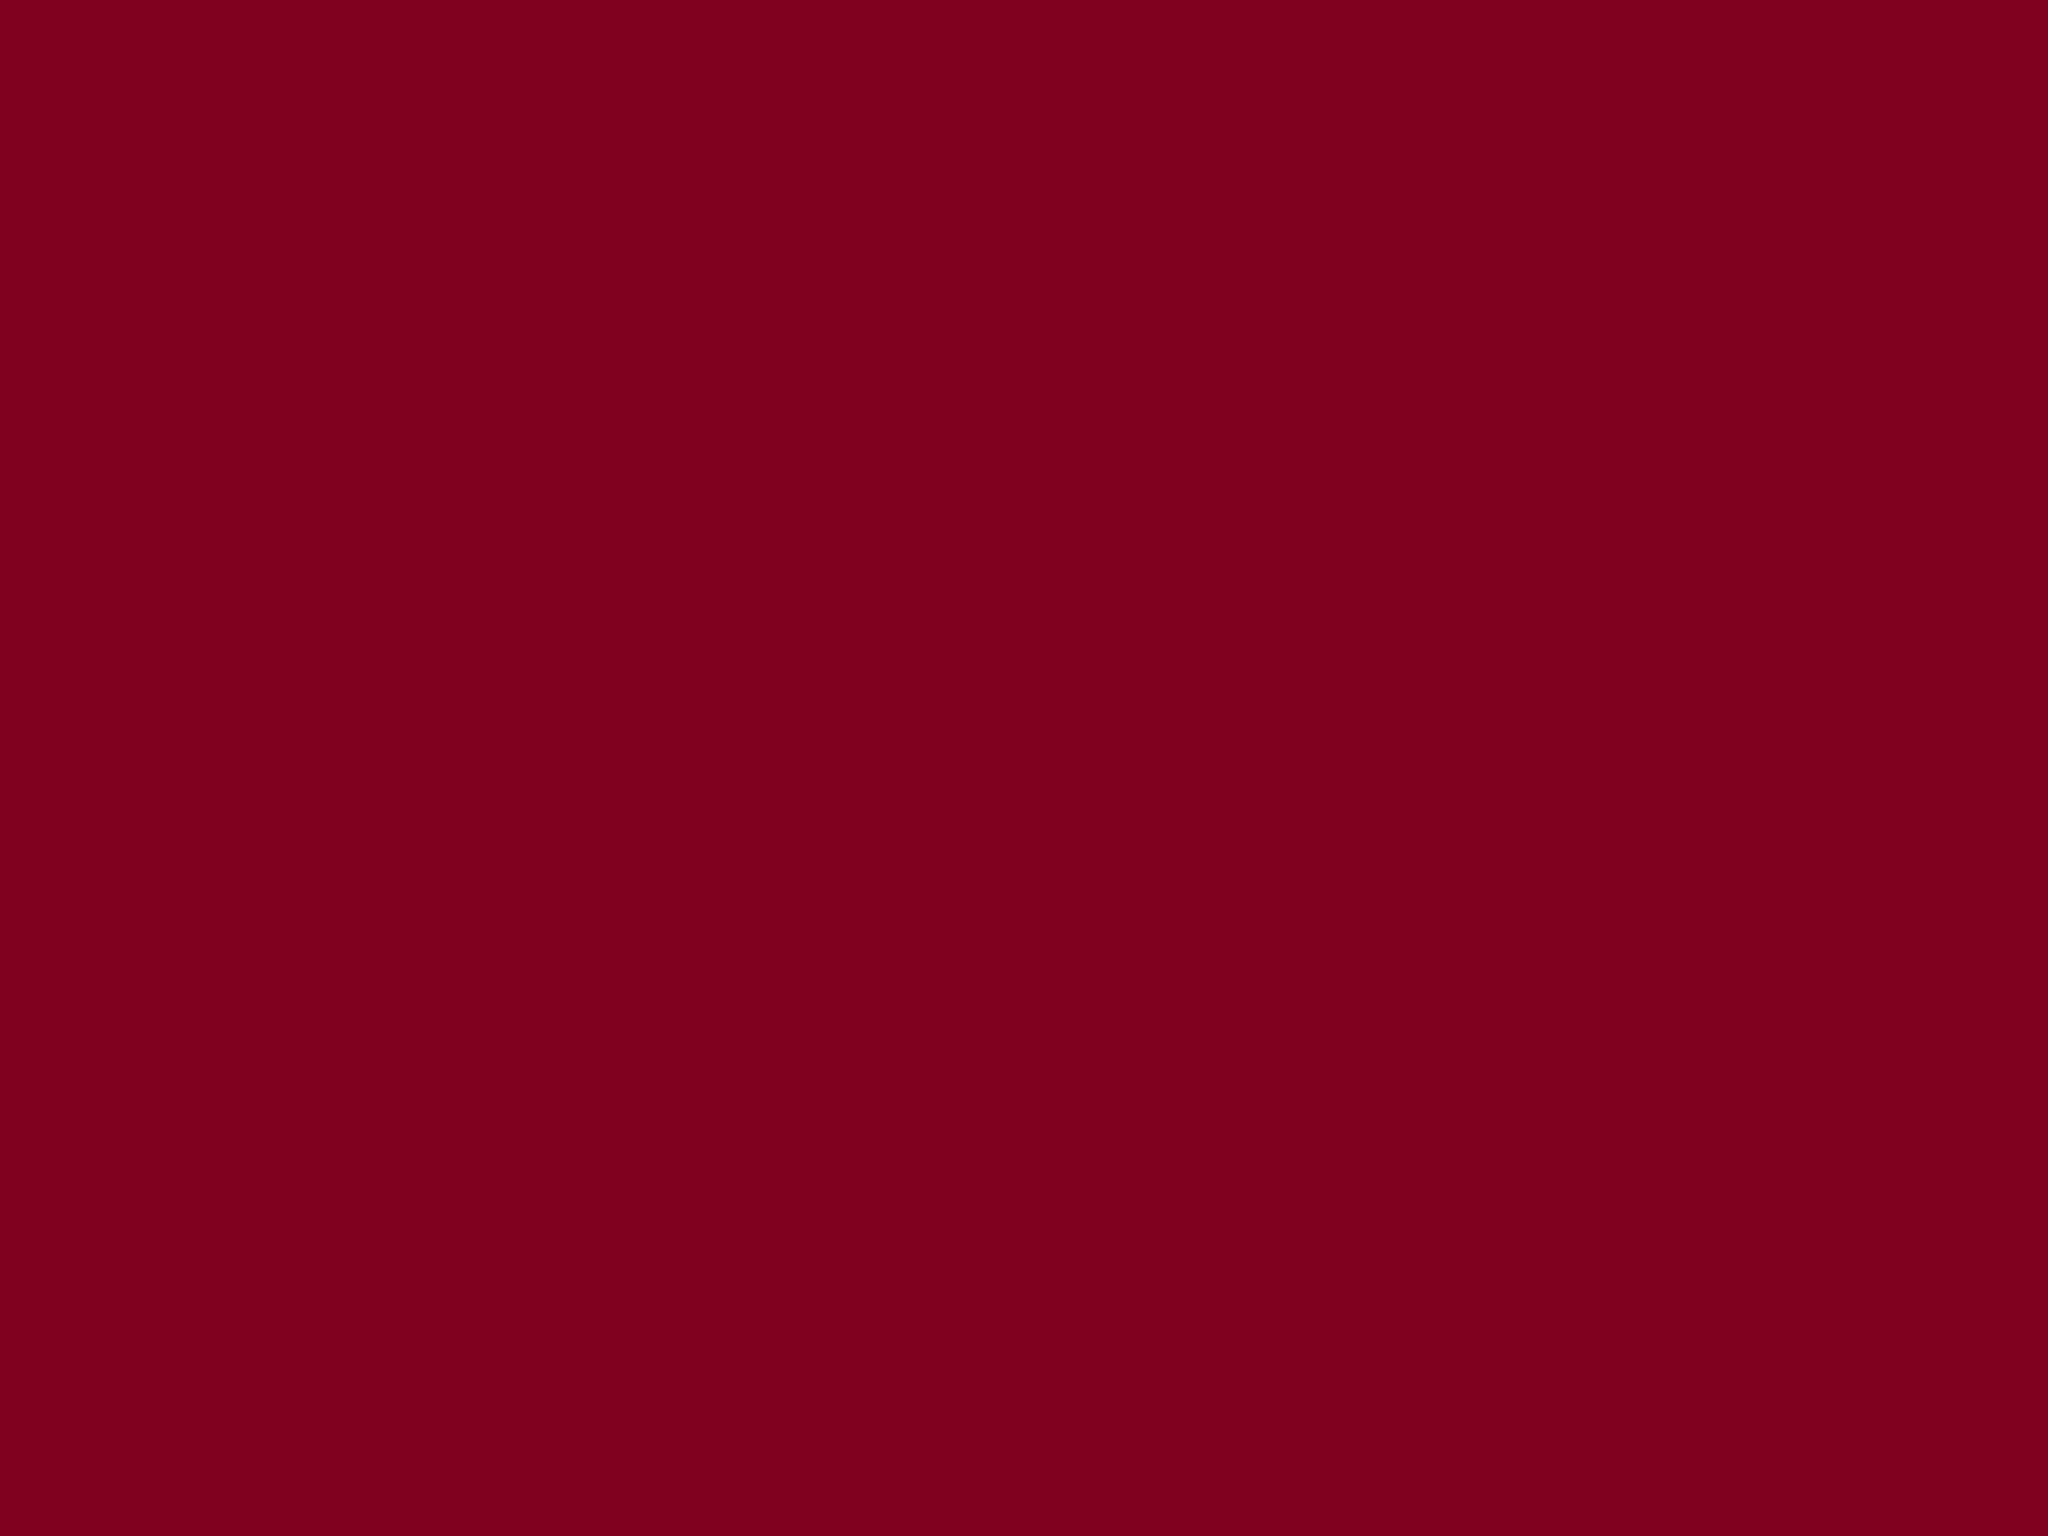 2048x1536 Burgundy Solid Color Background